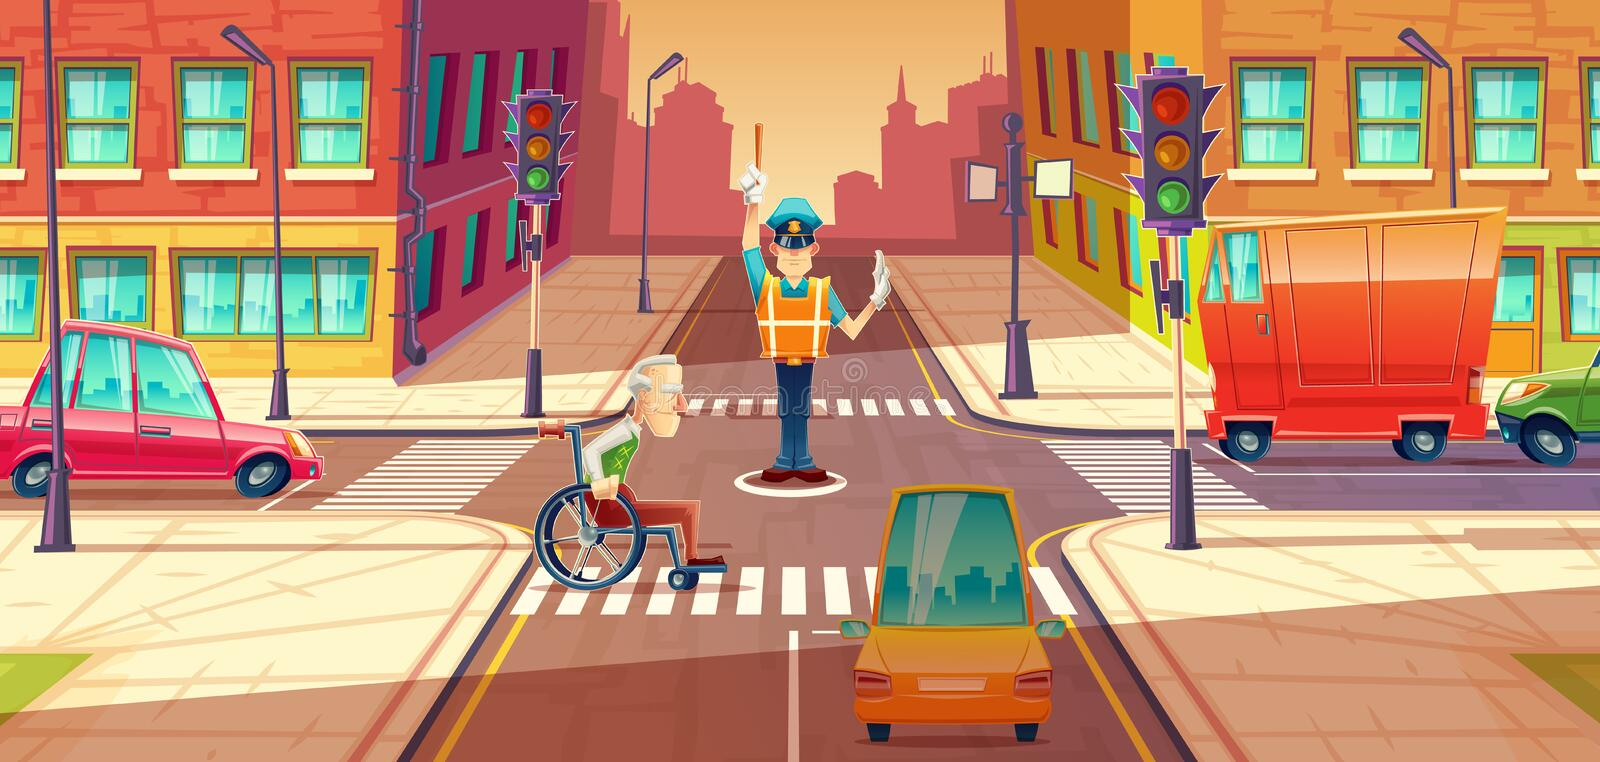 Vector illustration of crossing guard adjusting transport moving, city crossroads with pedestrian, disabled person. Urban highway regulation, crosswalk with stock illustration